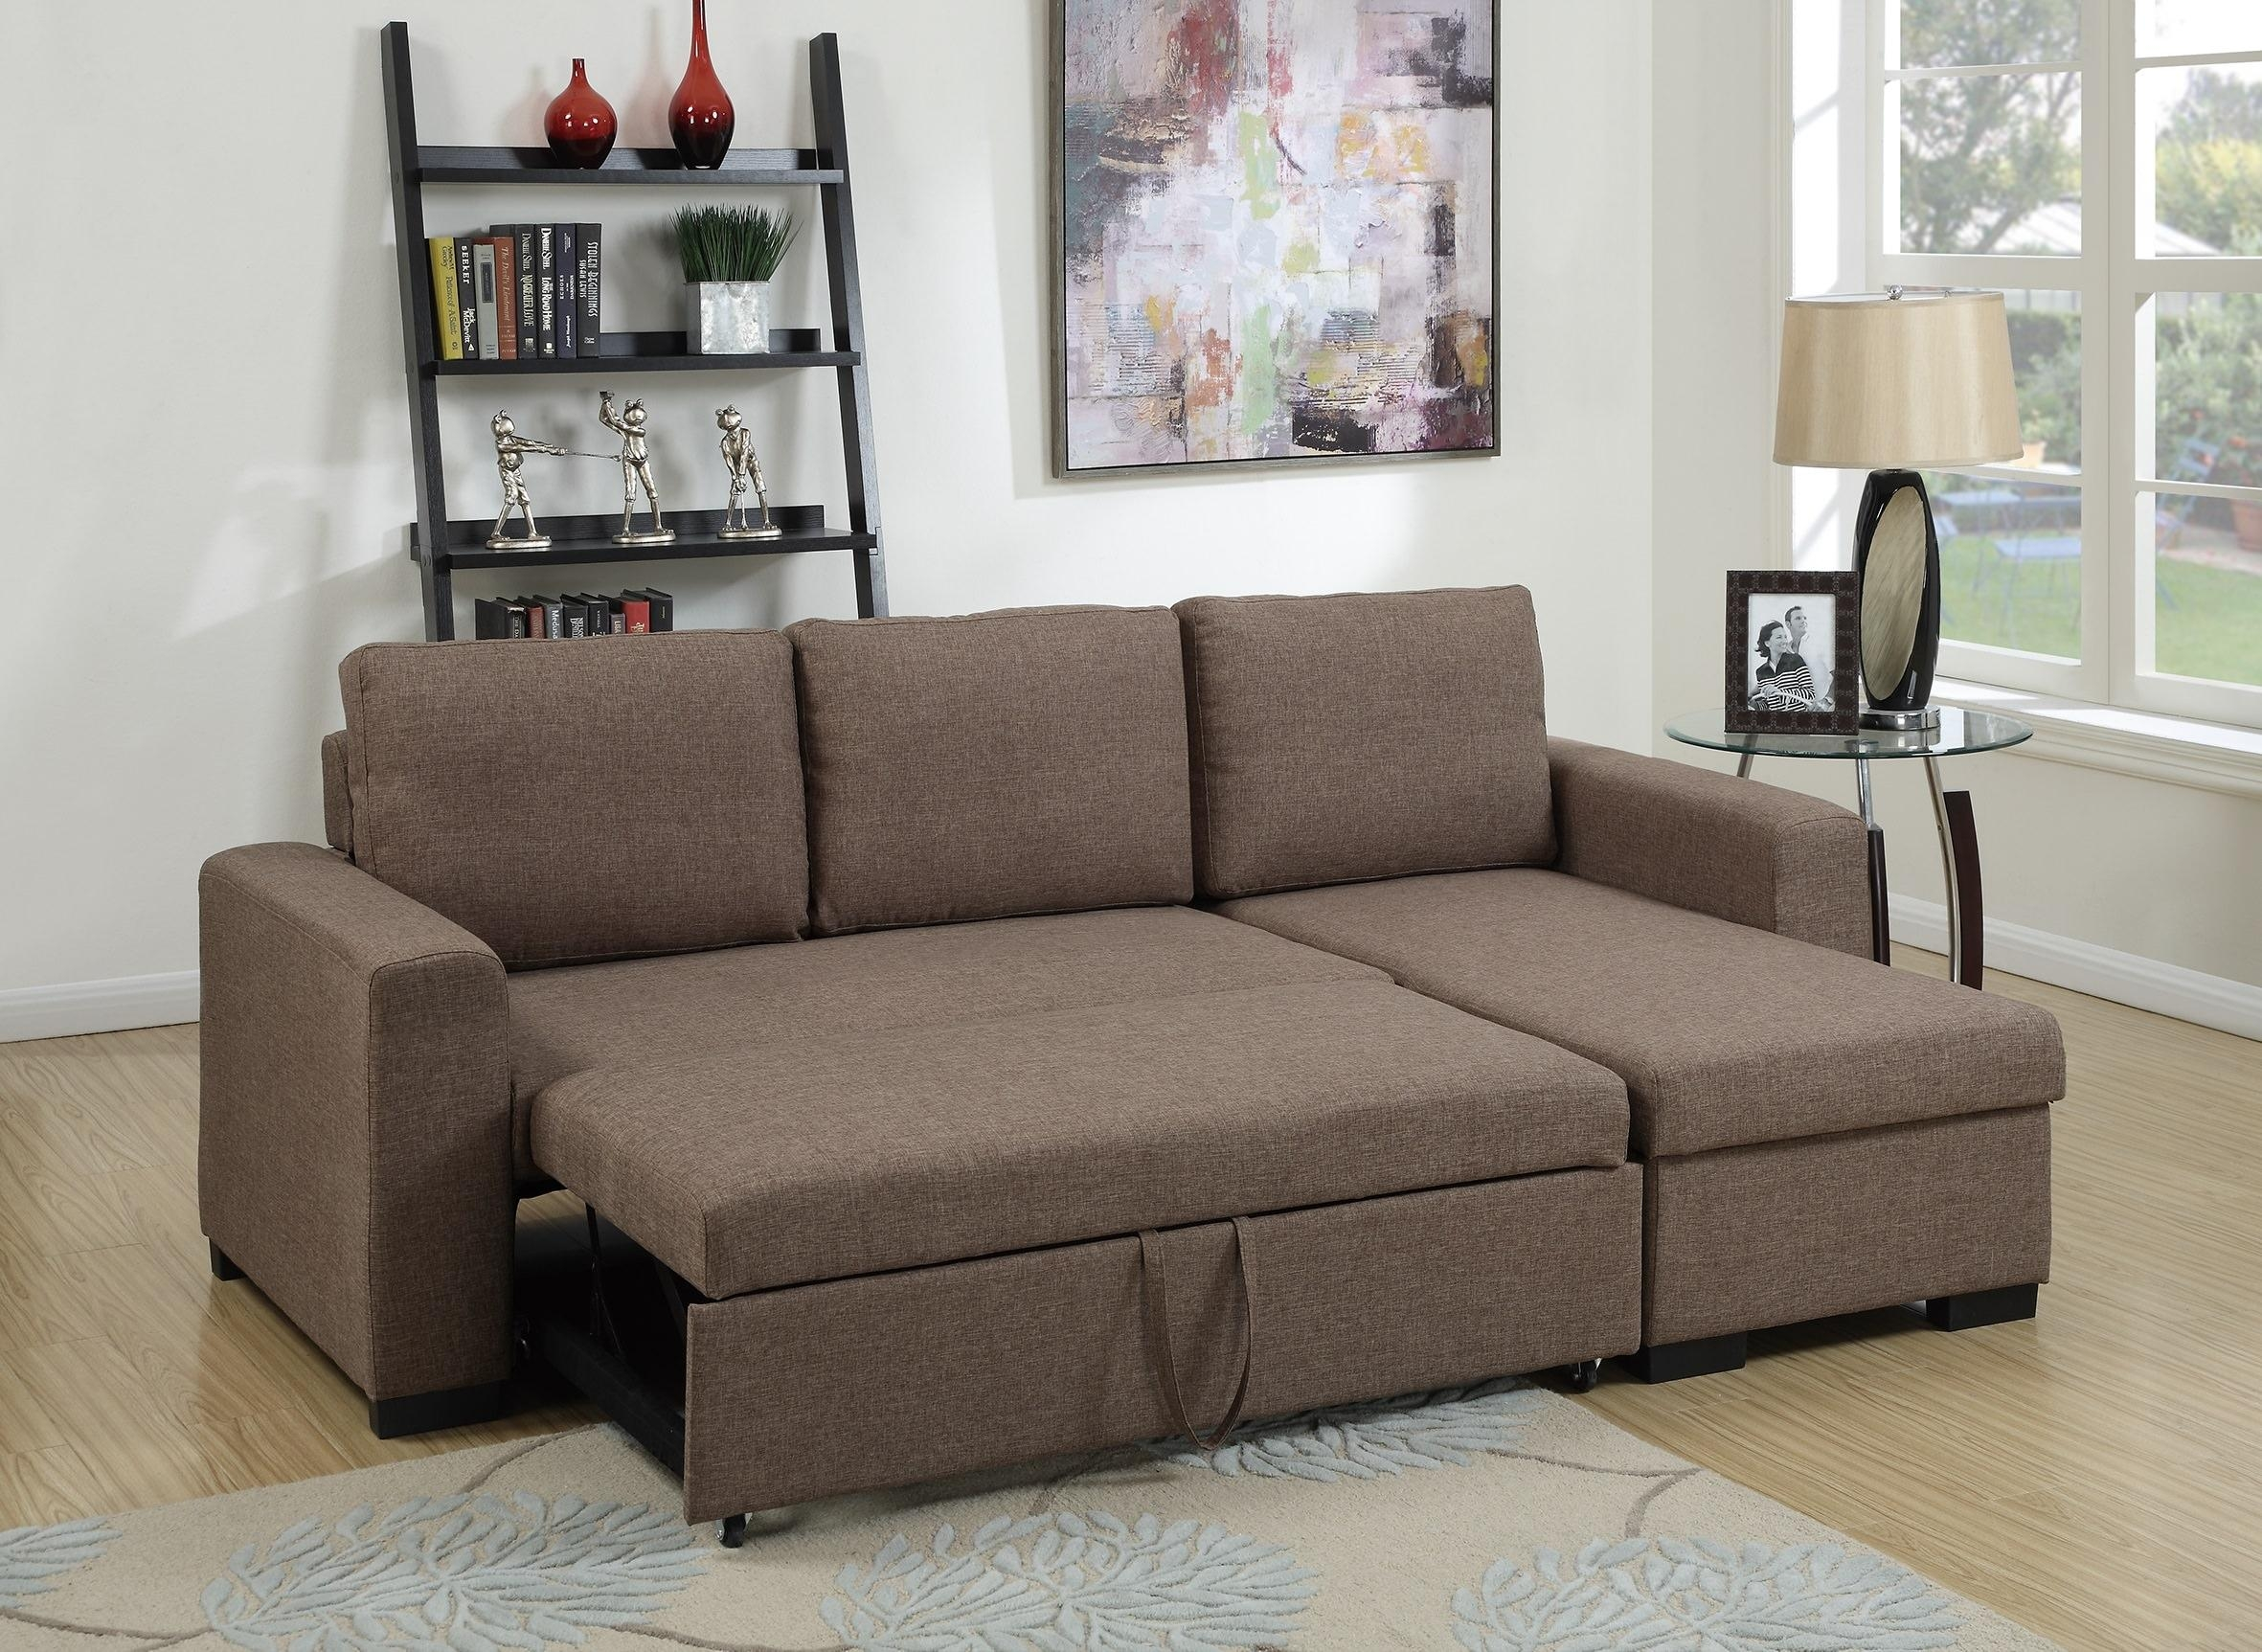 F6932 Light Coffee Convertible Sectional Sofapoundex With Regard To Convertible Sectional (Image 4 of 15)